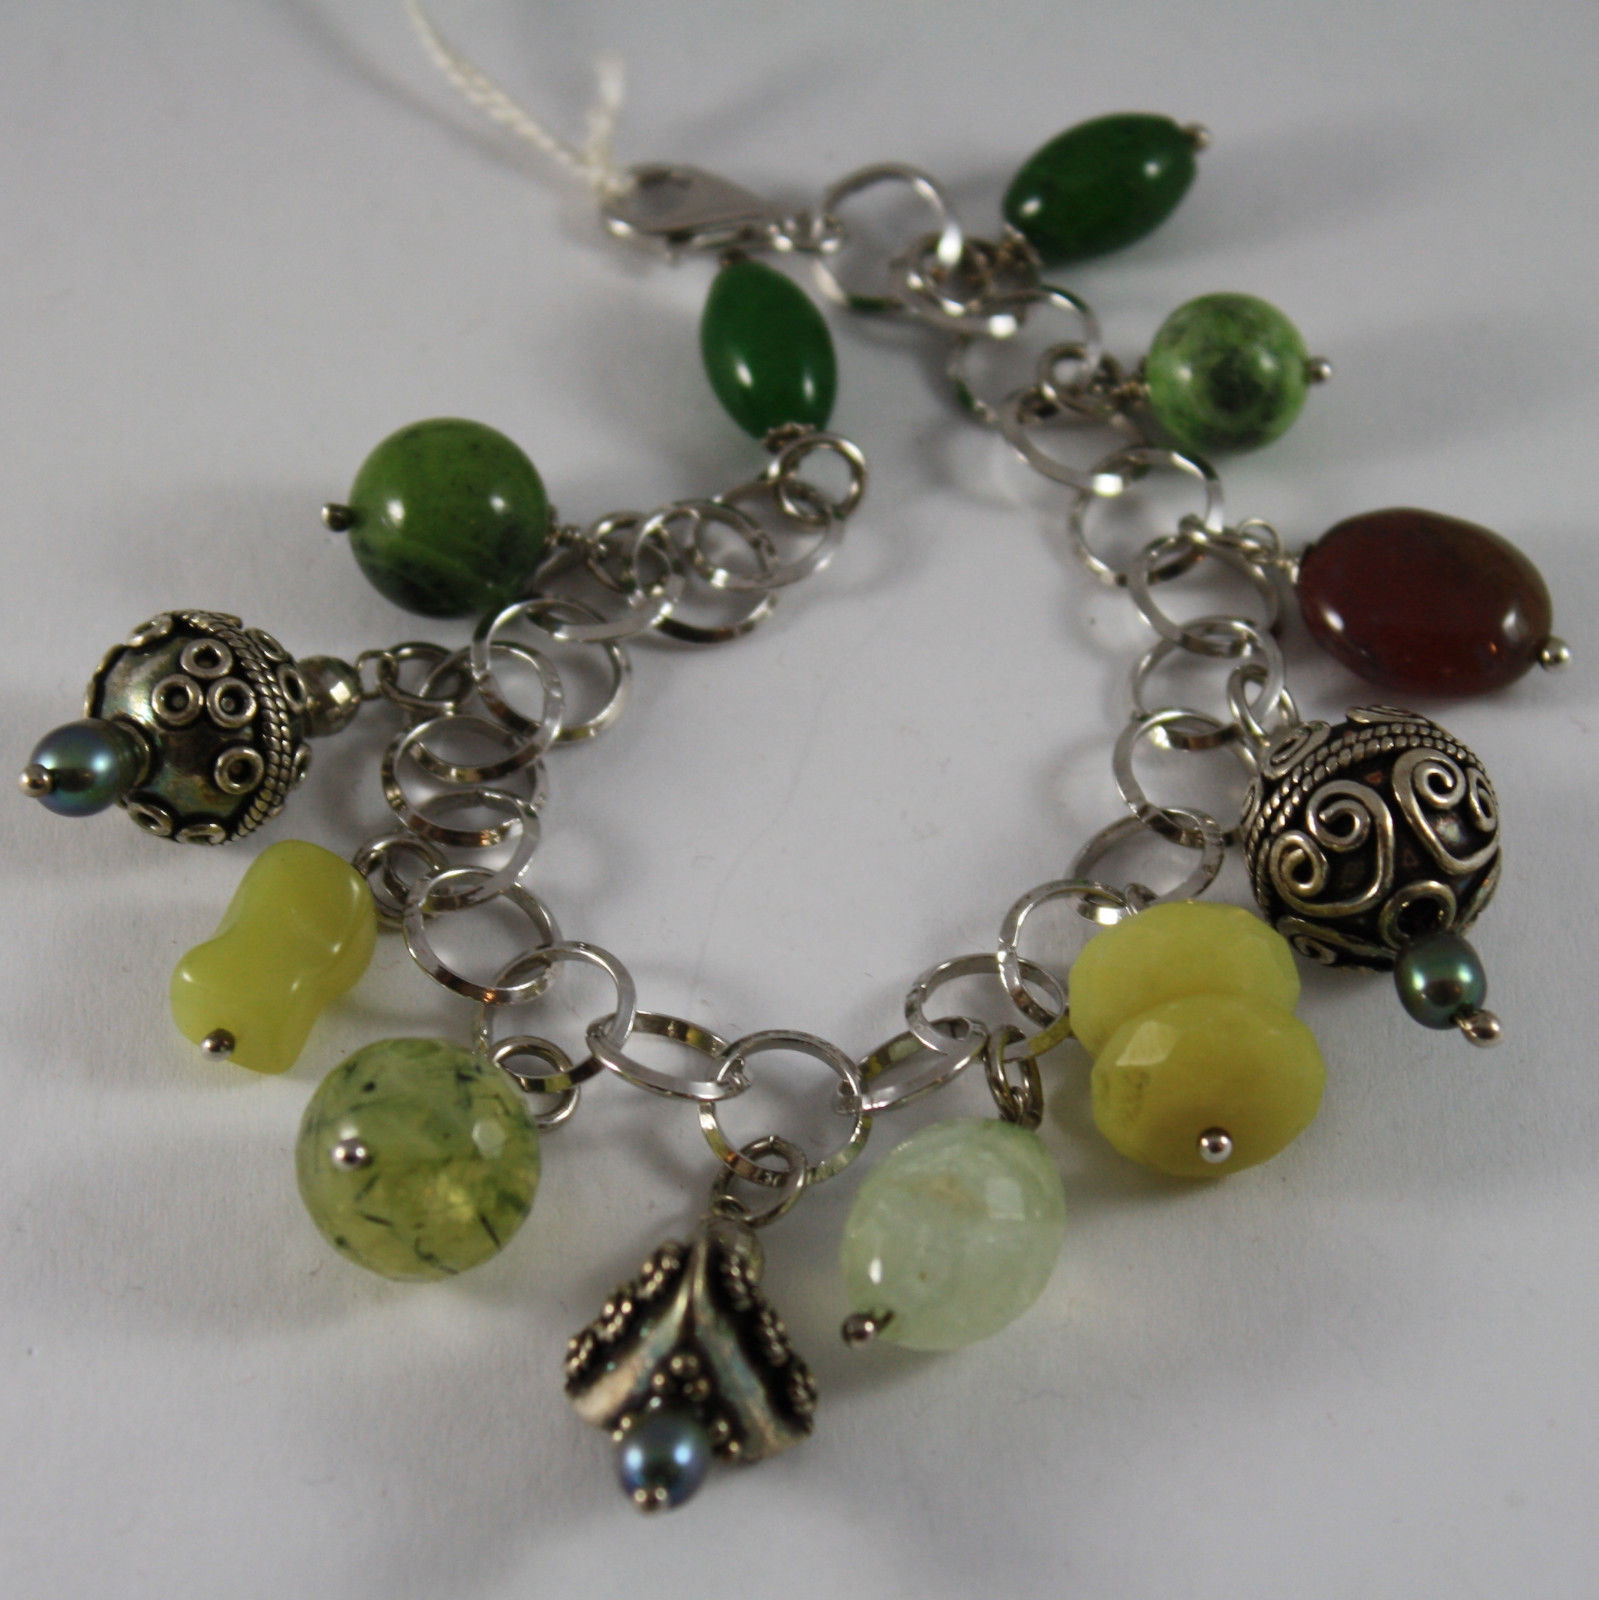 .925 RHODIUM SILVER BRACELET WITH GREEN JASPER, BROWN AGATE AND GREEN JADE